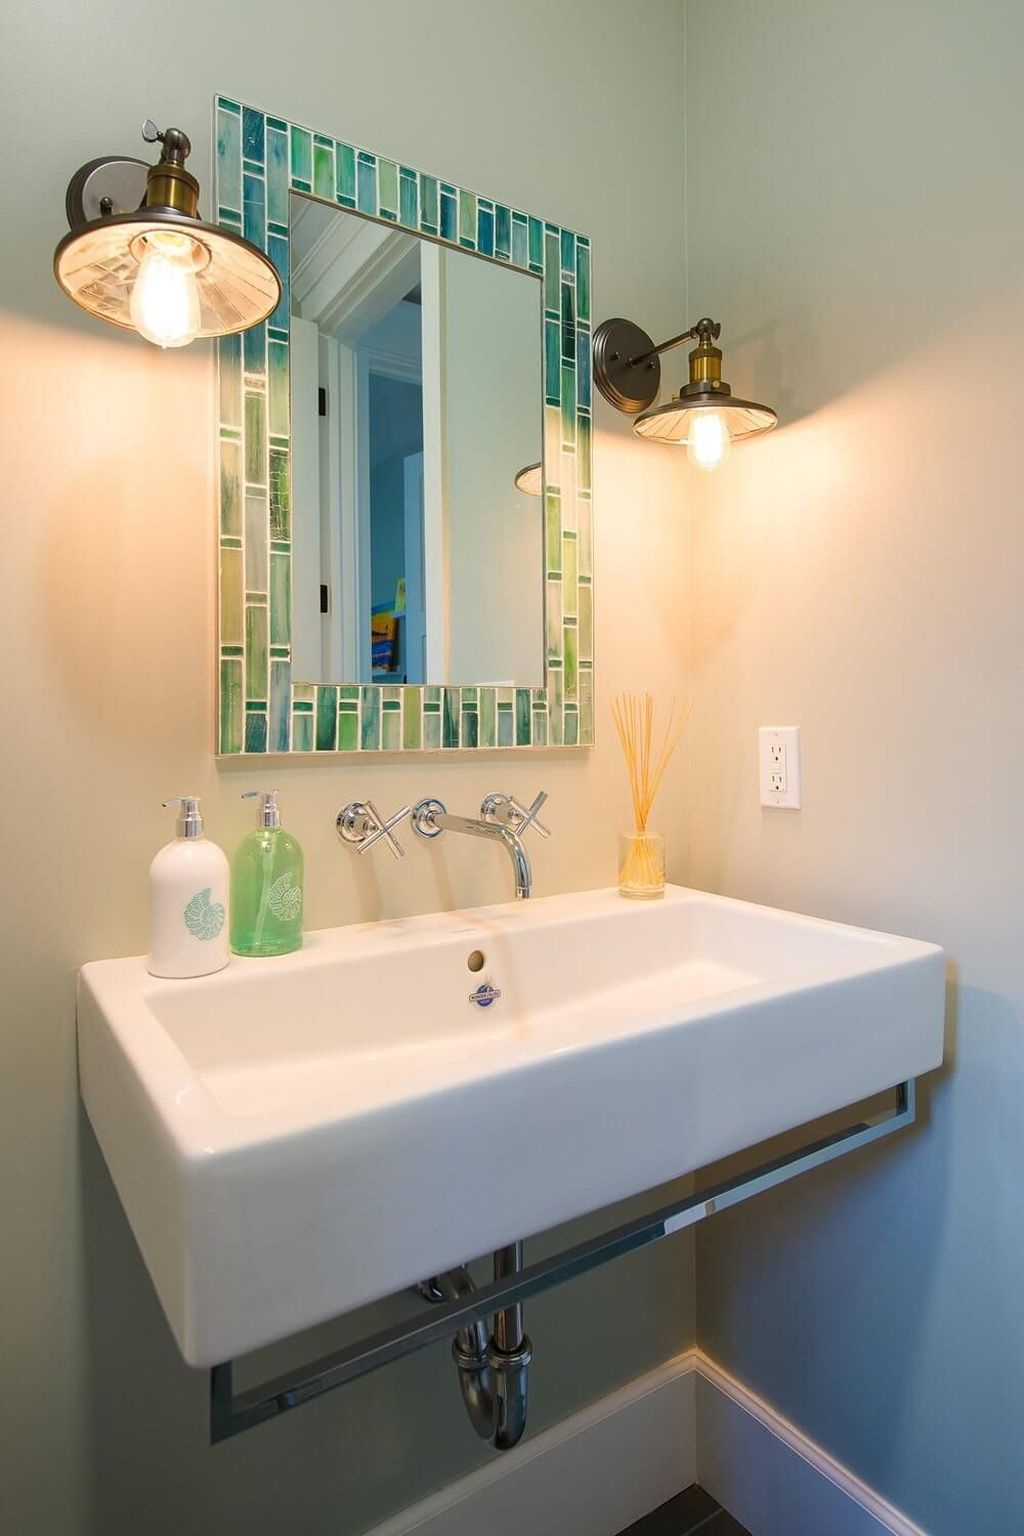 Fabulous Bathroom Decor Ideas With Coastal Style 03